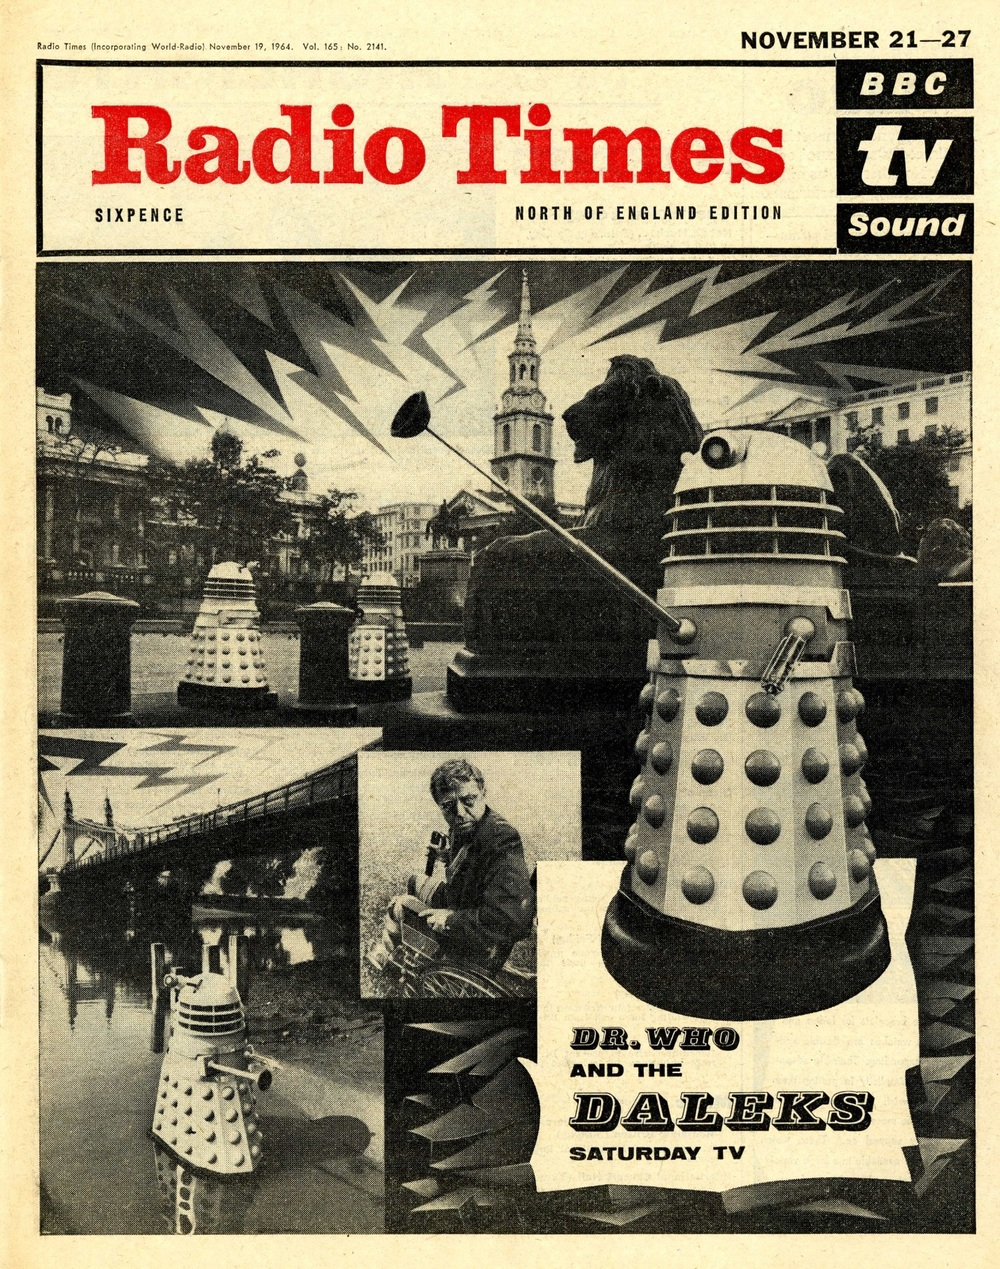 Radio Times. The Dalek Invasion of Earth cover, 21-27 November 1964